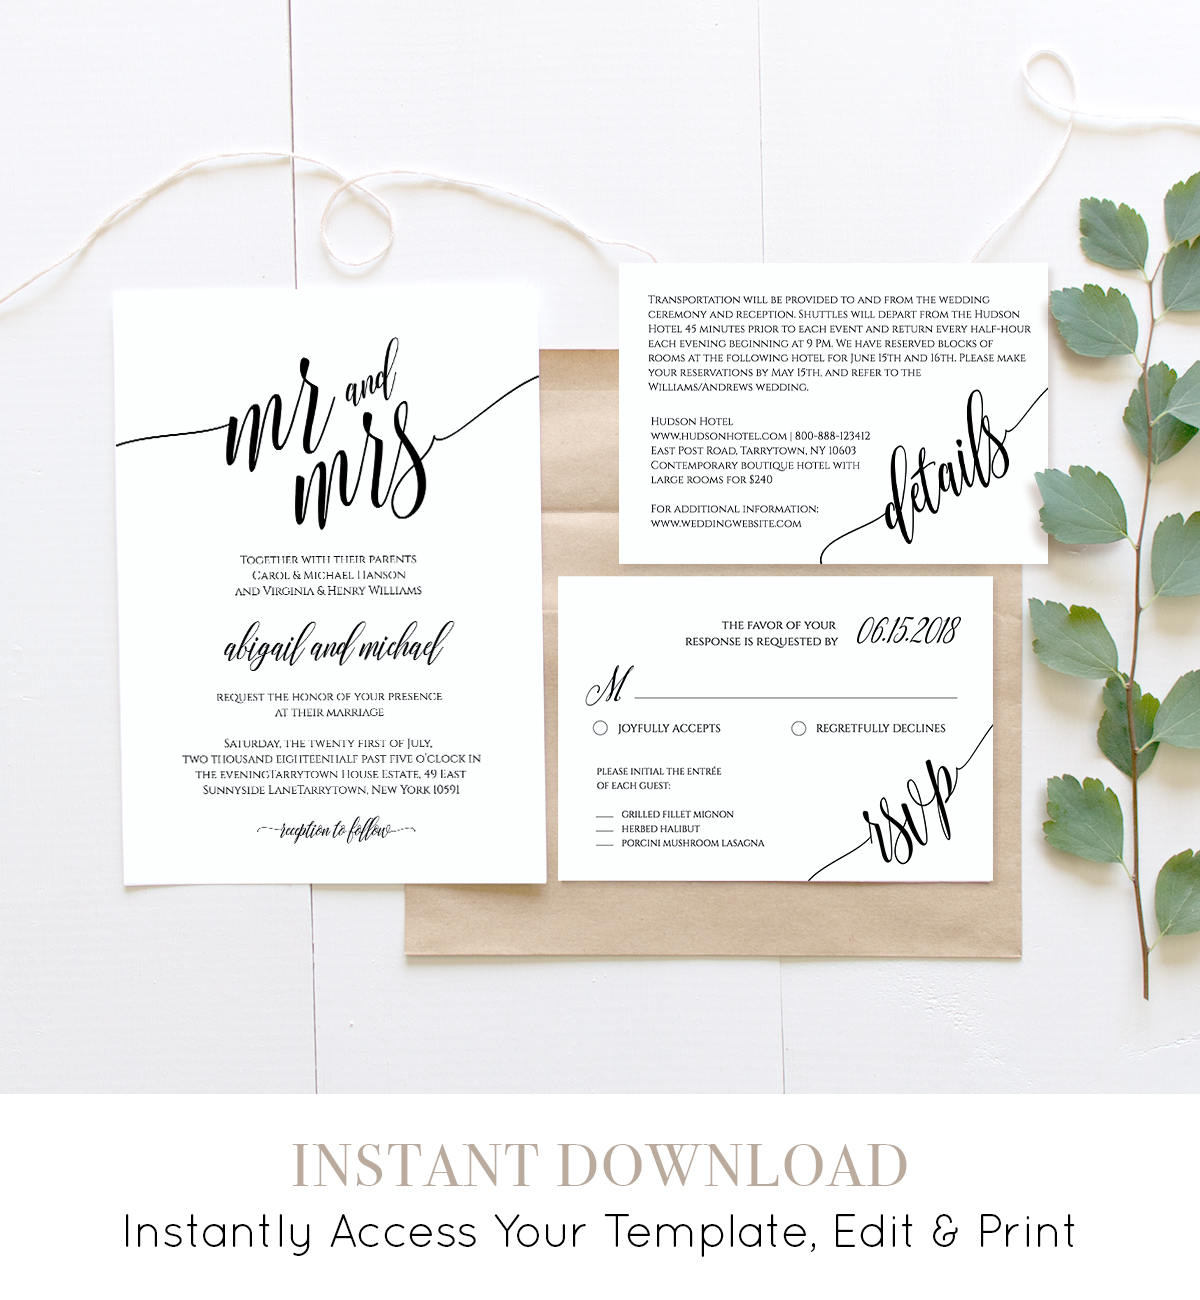 Wedding Invitation Template Instant Download Rustic Modern regarding dimensions 1200 X 1300